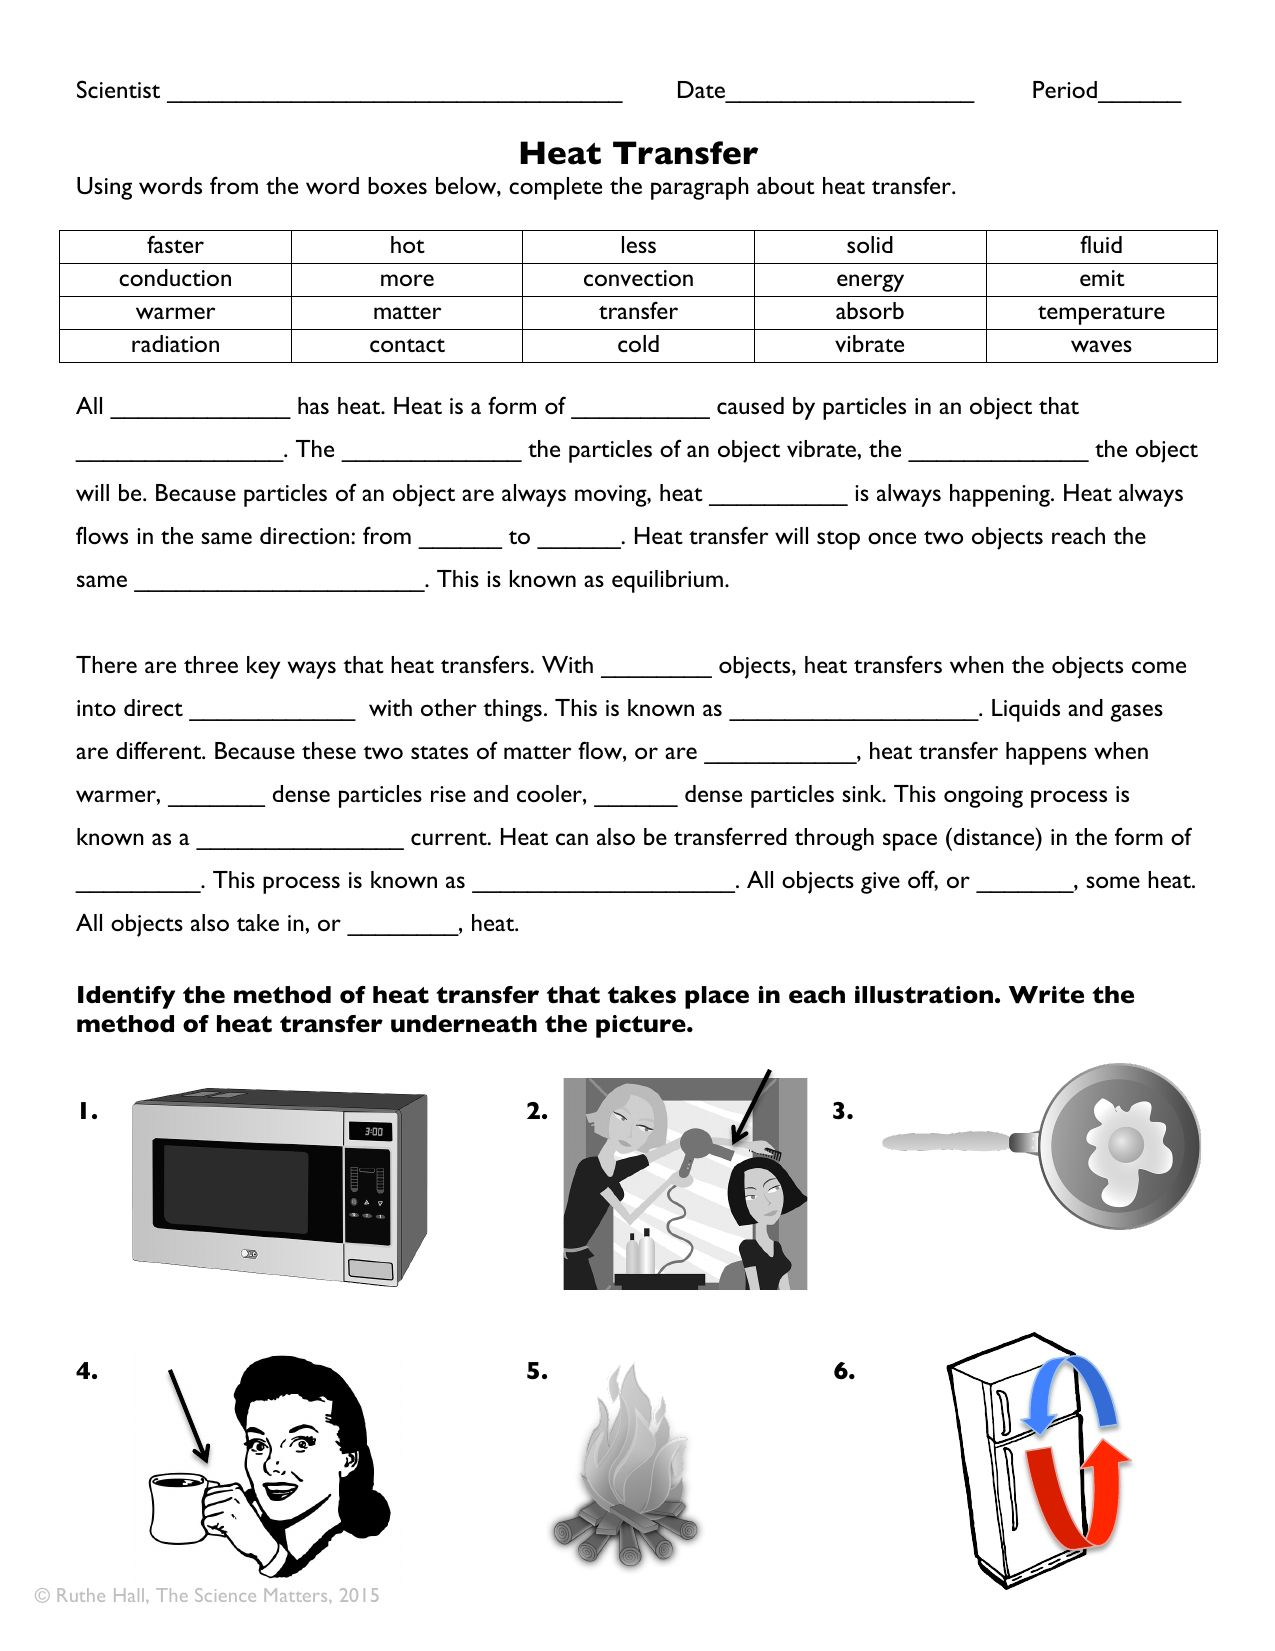 Heat Transfer Worksheet Answers